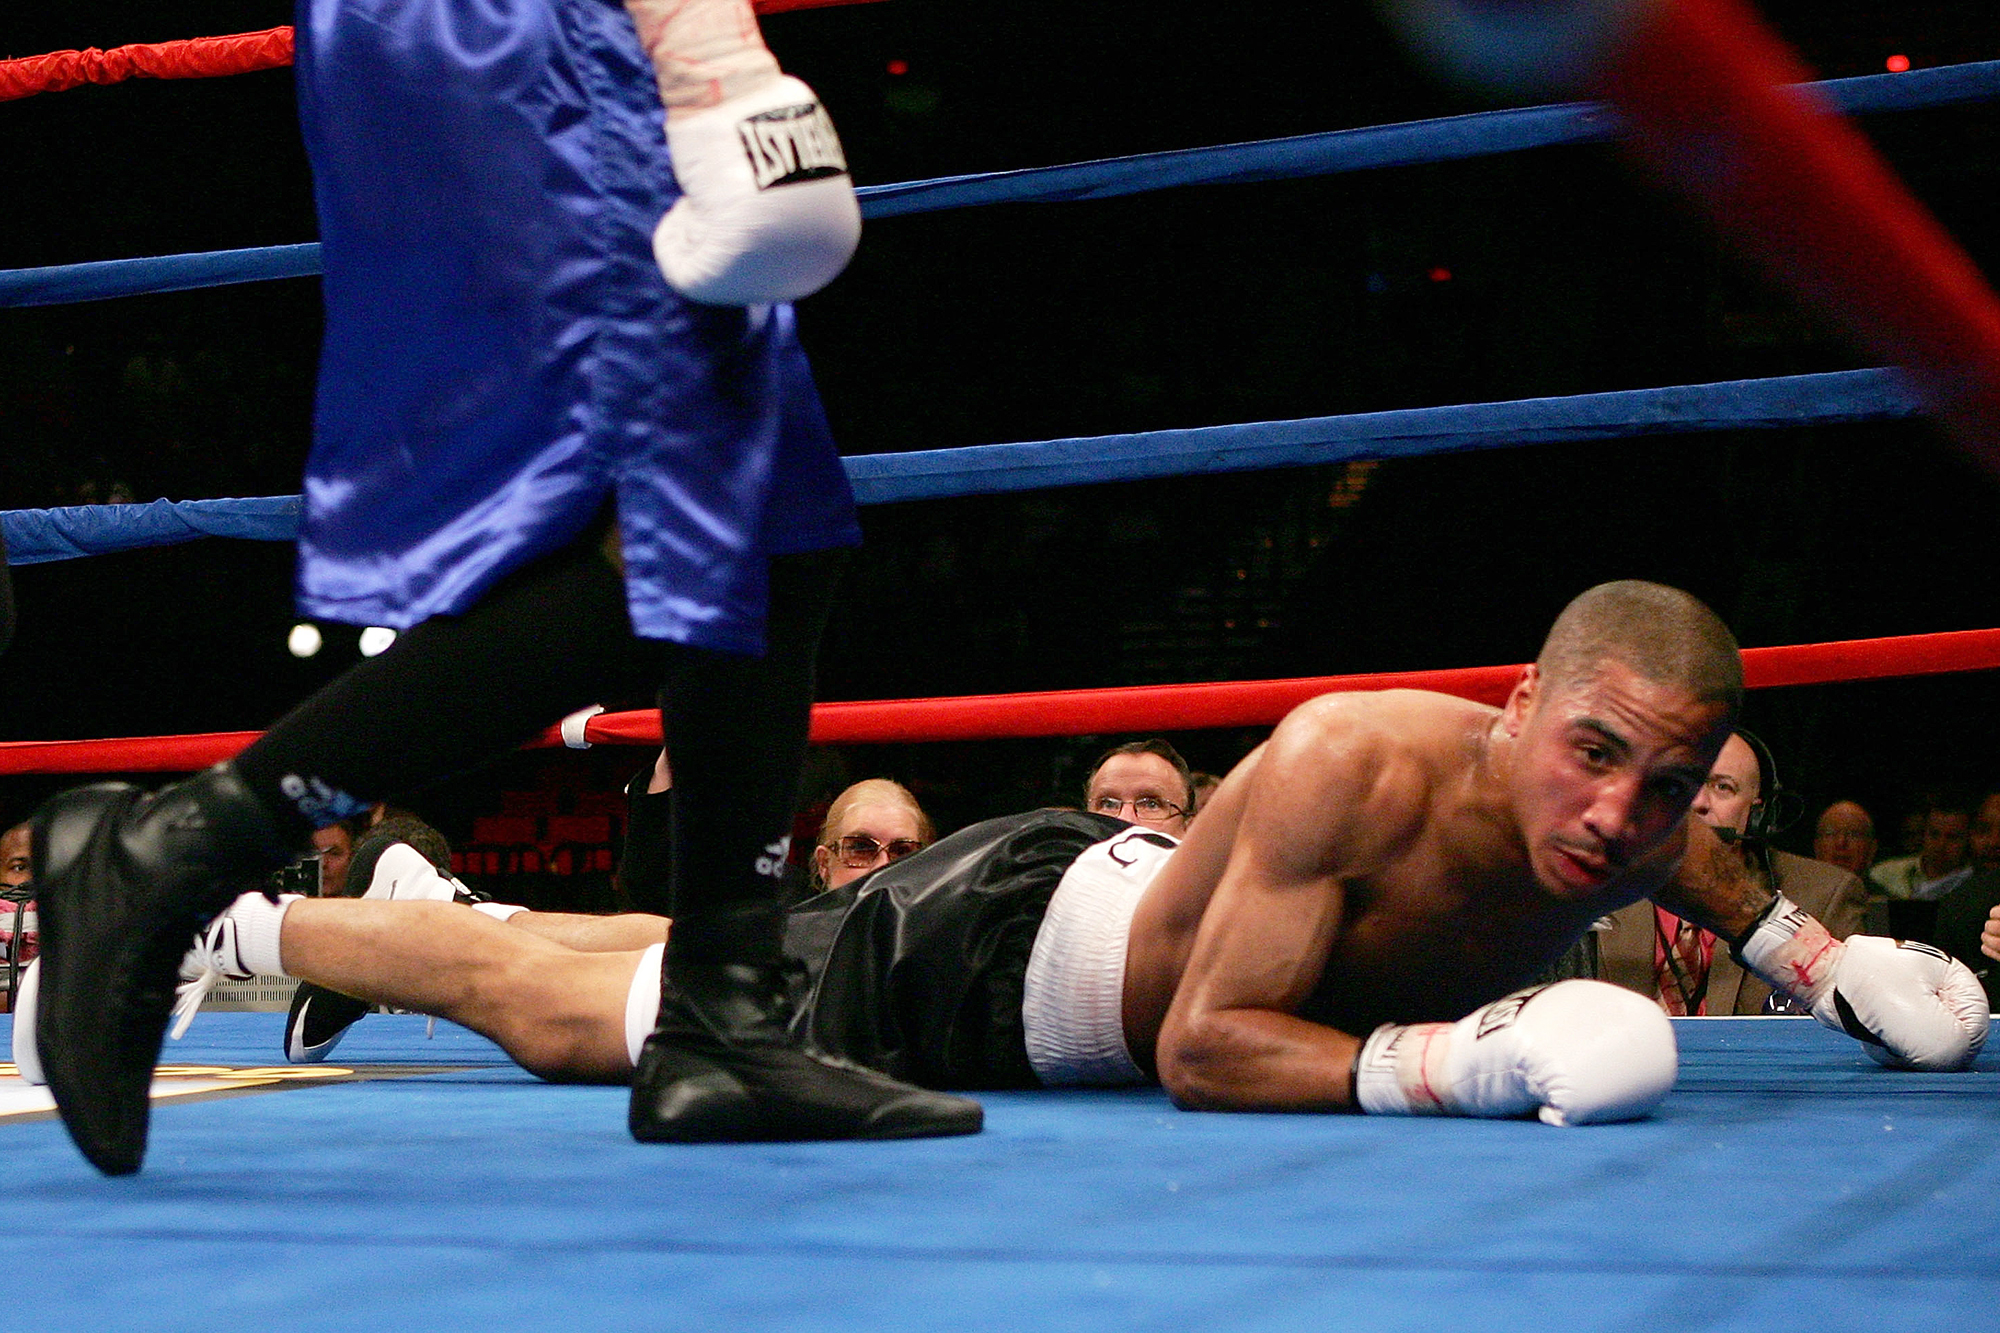 Andre Ward is knocked down in the fourth round by Darnell Boone during their middleweight fight on November 19, 2005 at the Rose Garden in Portland, Oregon.